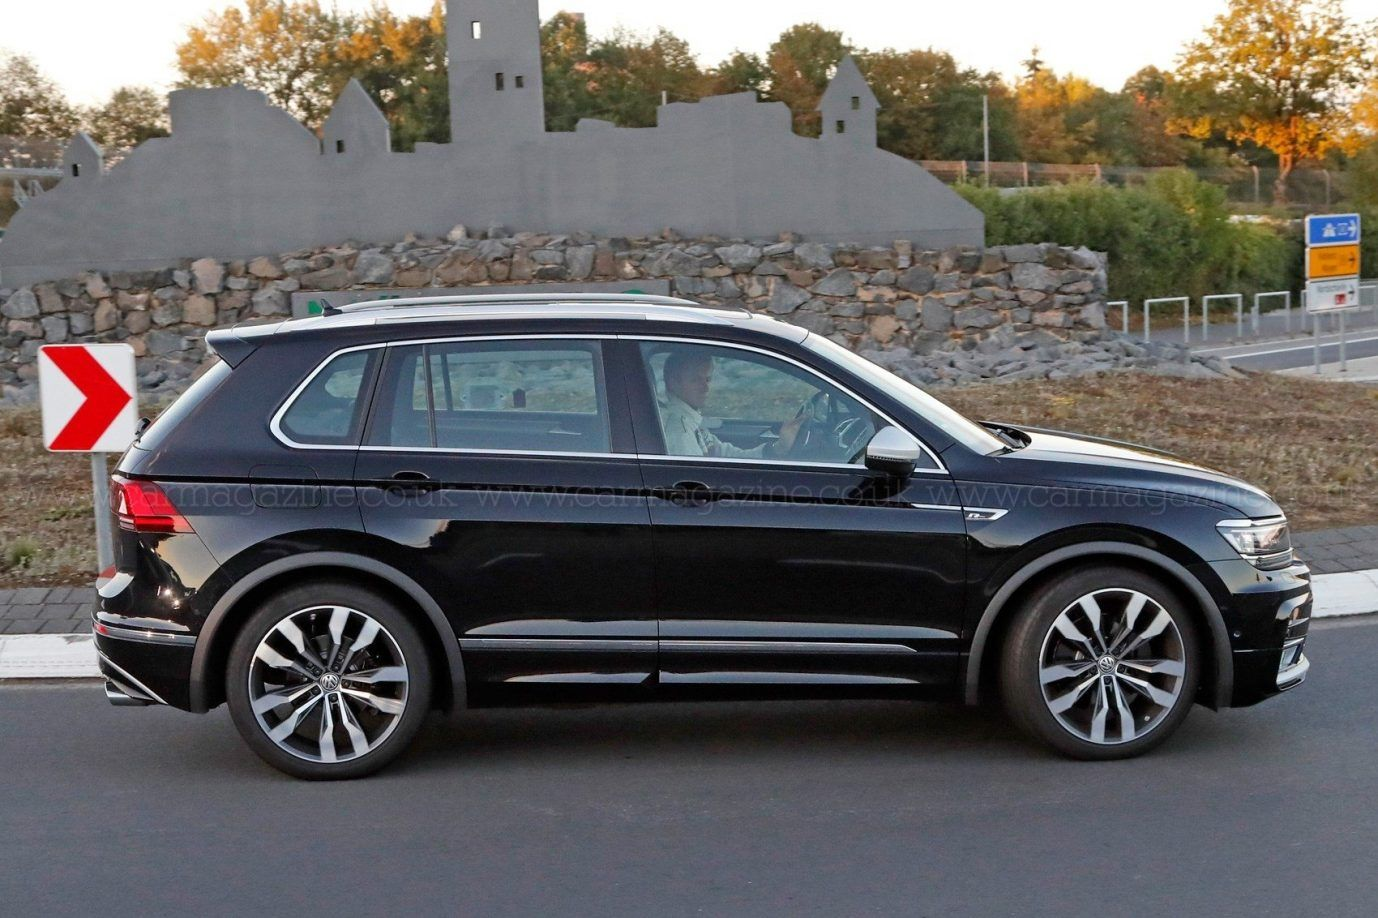 2020 Volkswagen Tiguan Review Interior Release Changes Price And Photos Volkswagen New Cars Best New Cars